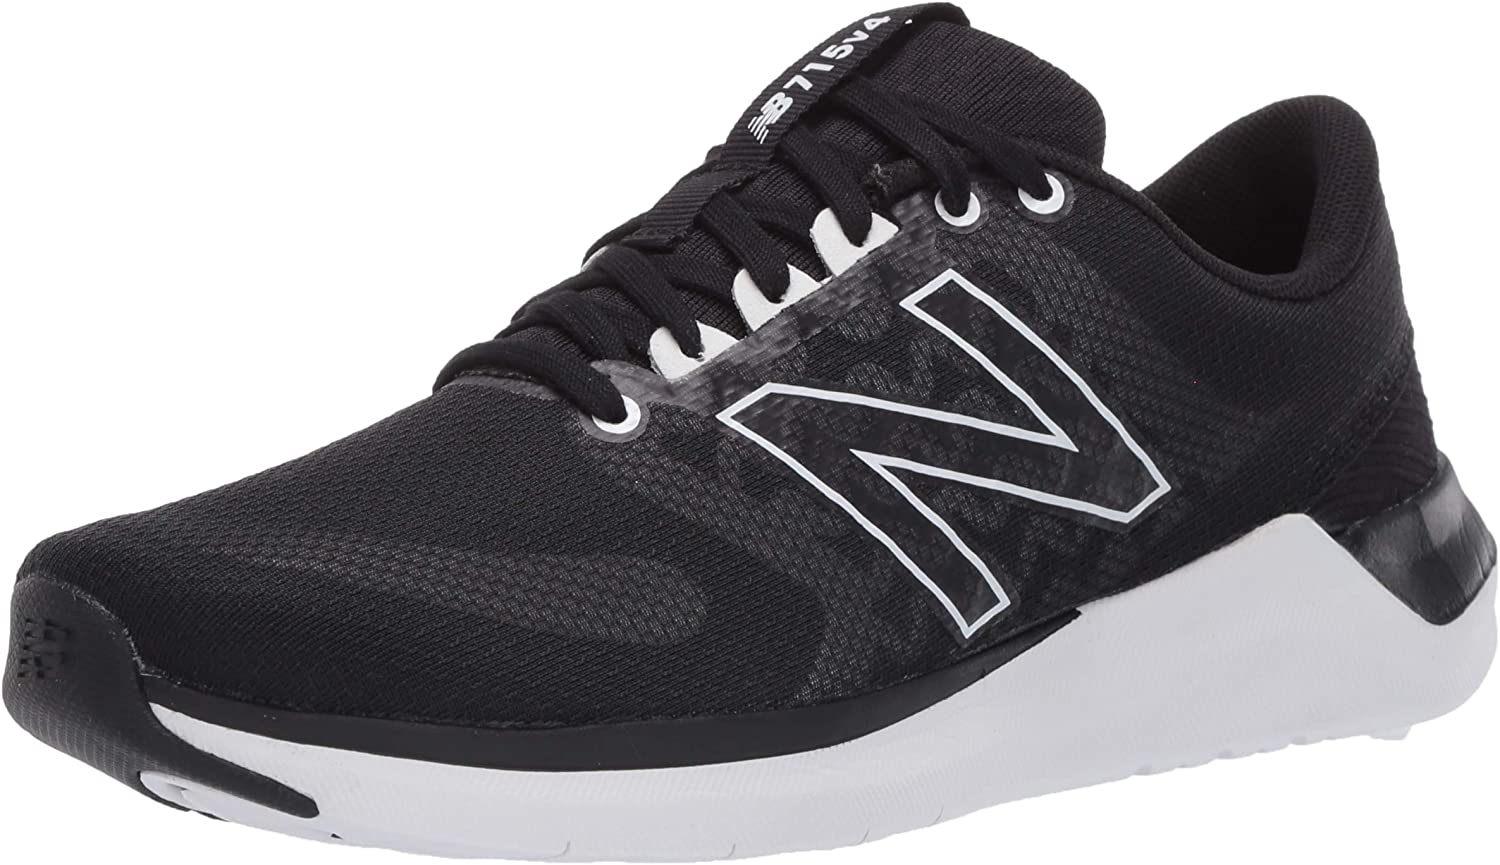 New Balance Women's Cush 715 V4 Cross Trainer